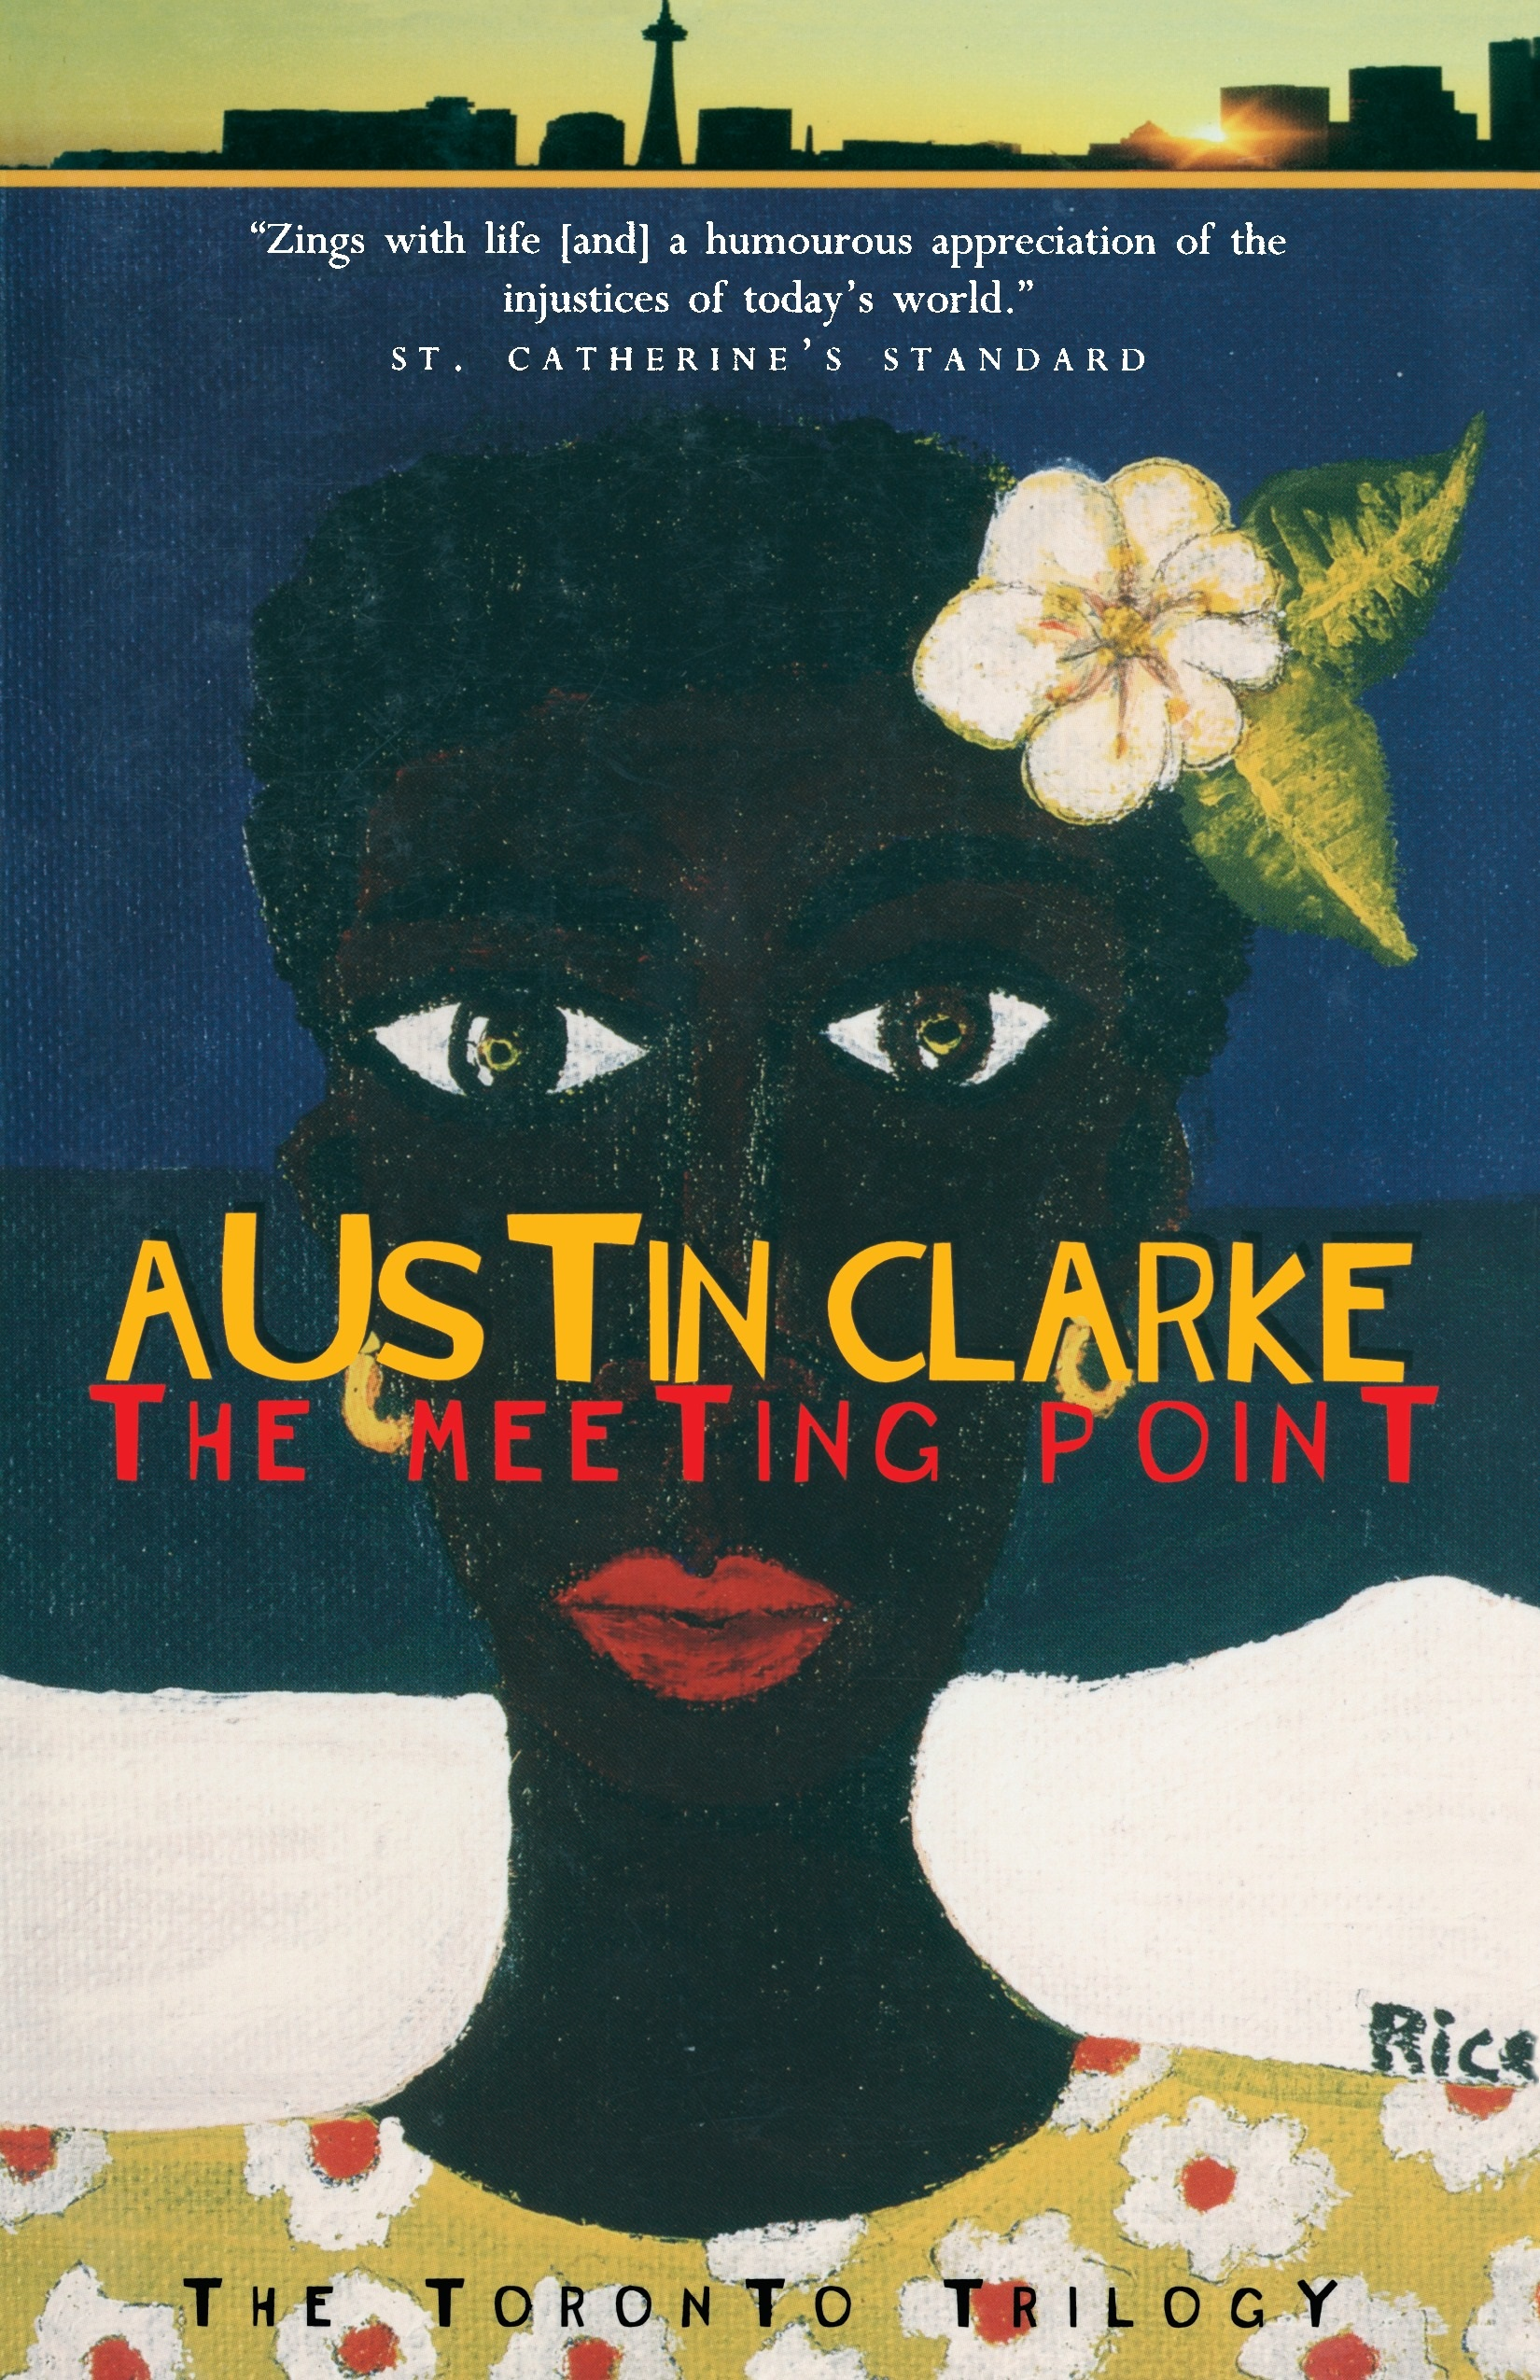 The Meeting Point by Austin Clarke